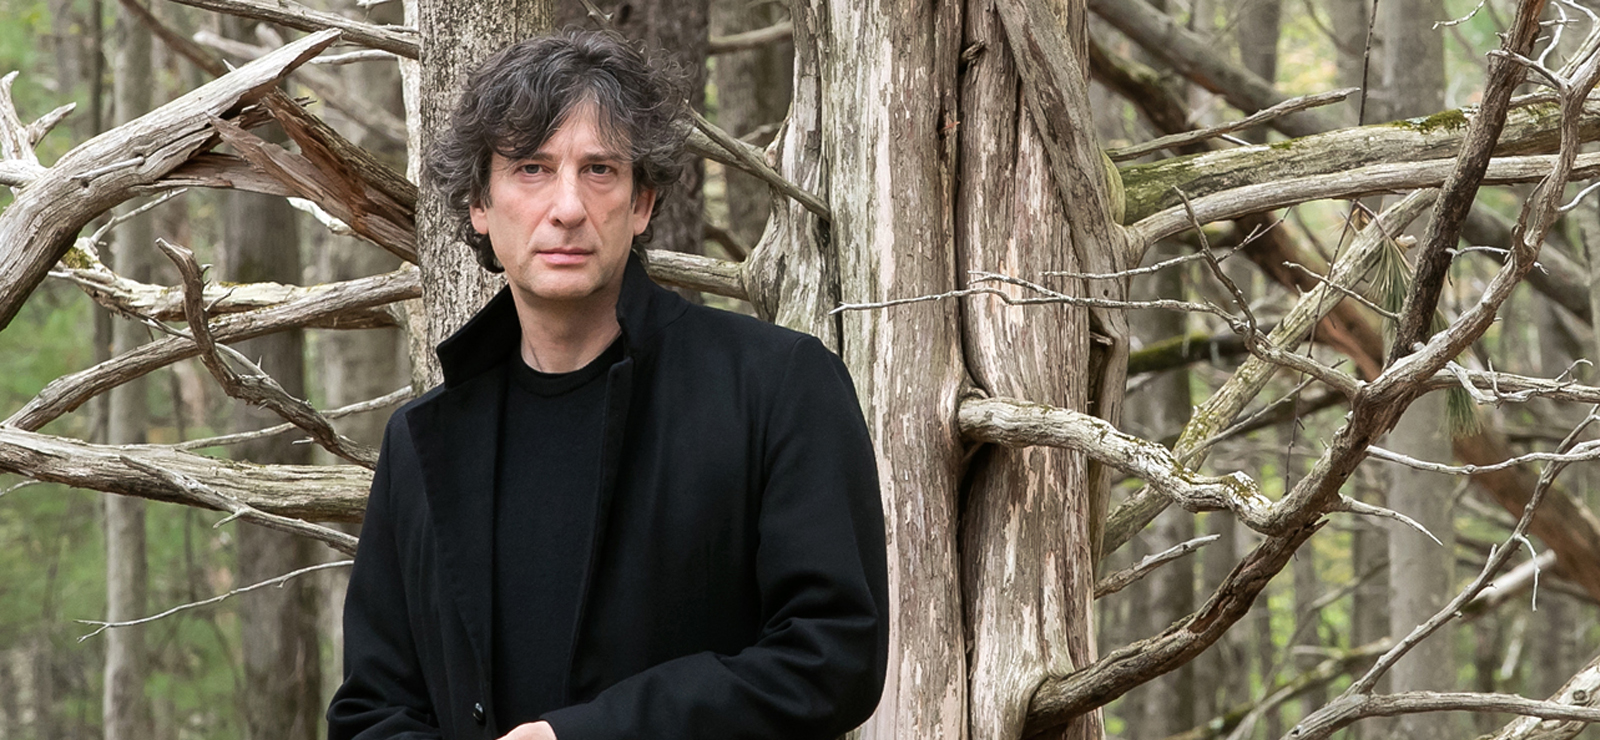 [An Evening with Neil Gaiman and John Cameron Mitchell] Photo by Beowulf Sheehan